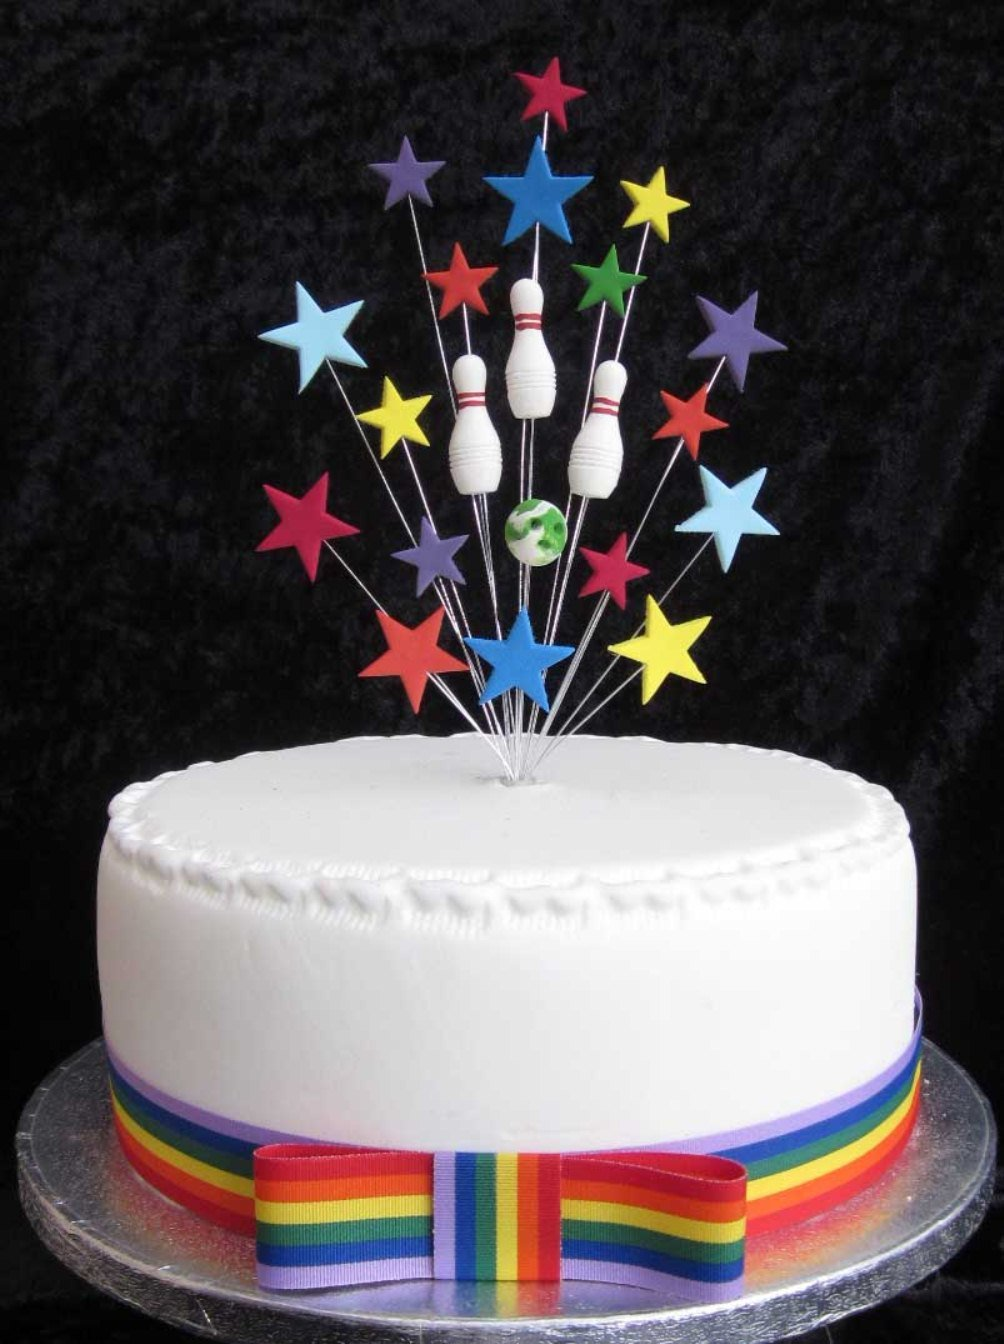 Ten Pin Bowling Birthday Cake Topper Ideal For A 20cm PLUS 1 X Metre 25mm Rainbow Grosgrain Ribbon With Bow Amazoncouk Kitchen Home